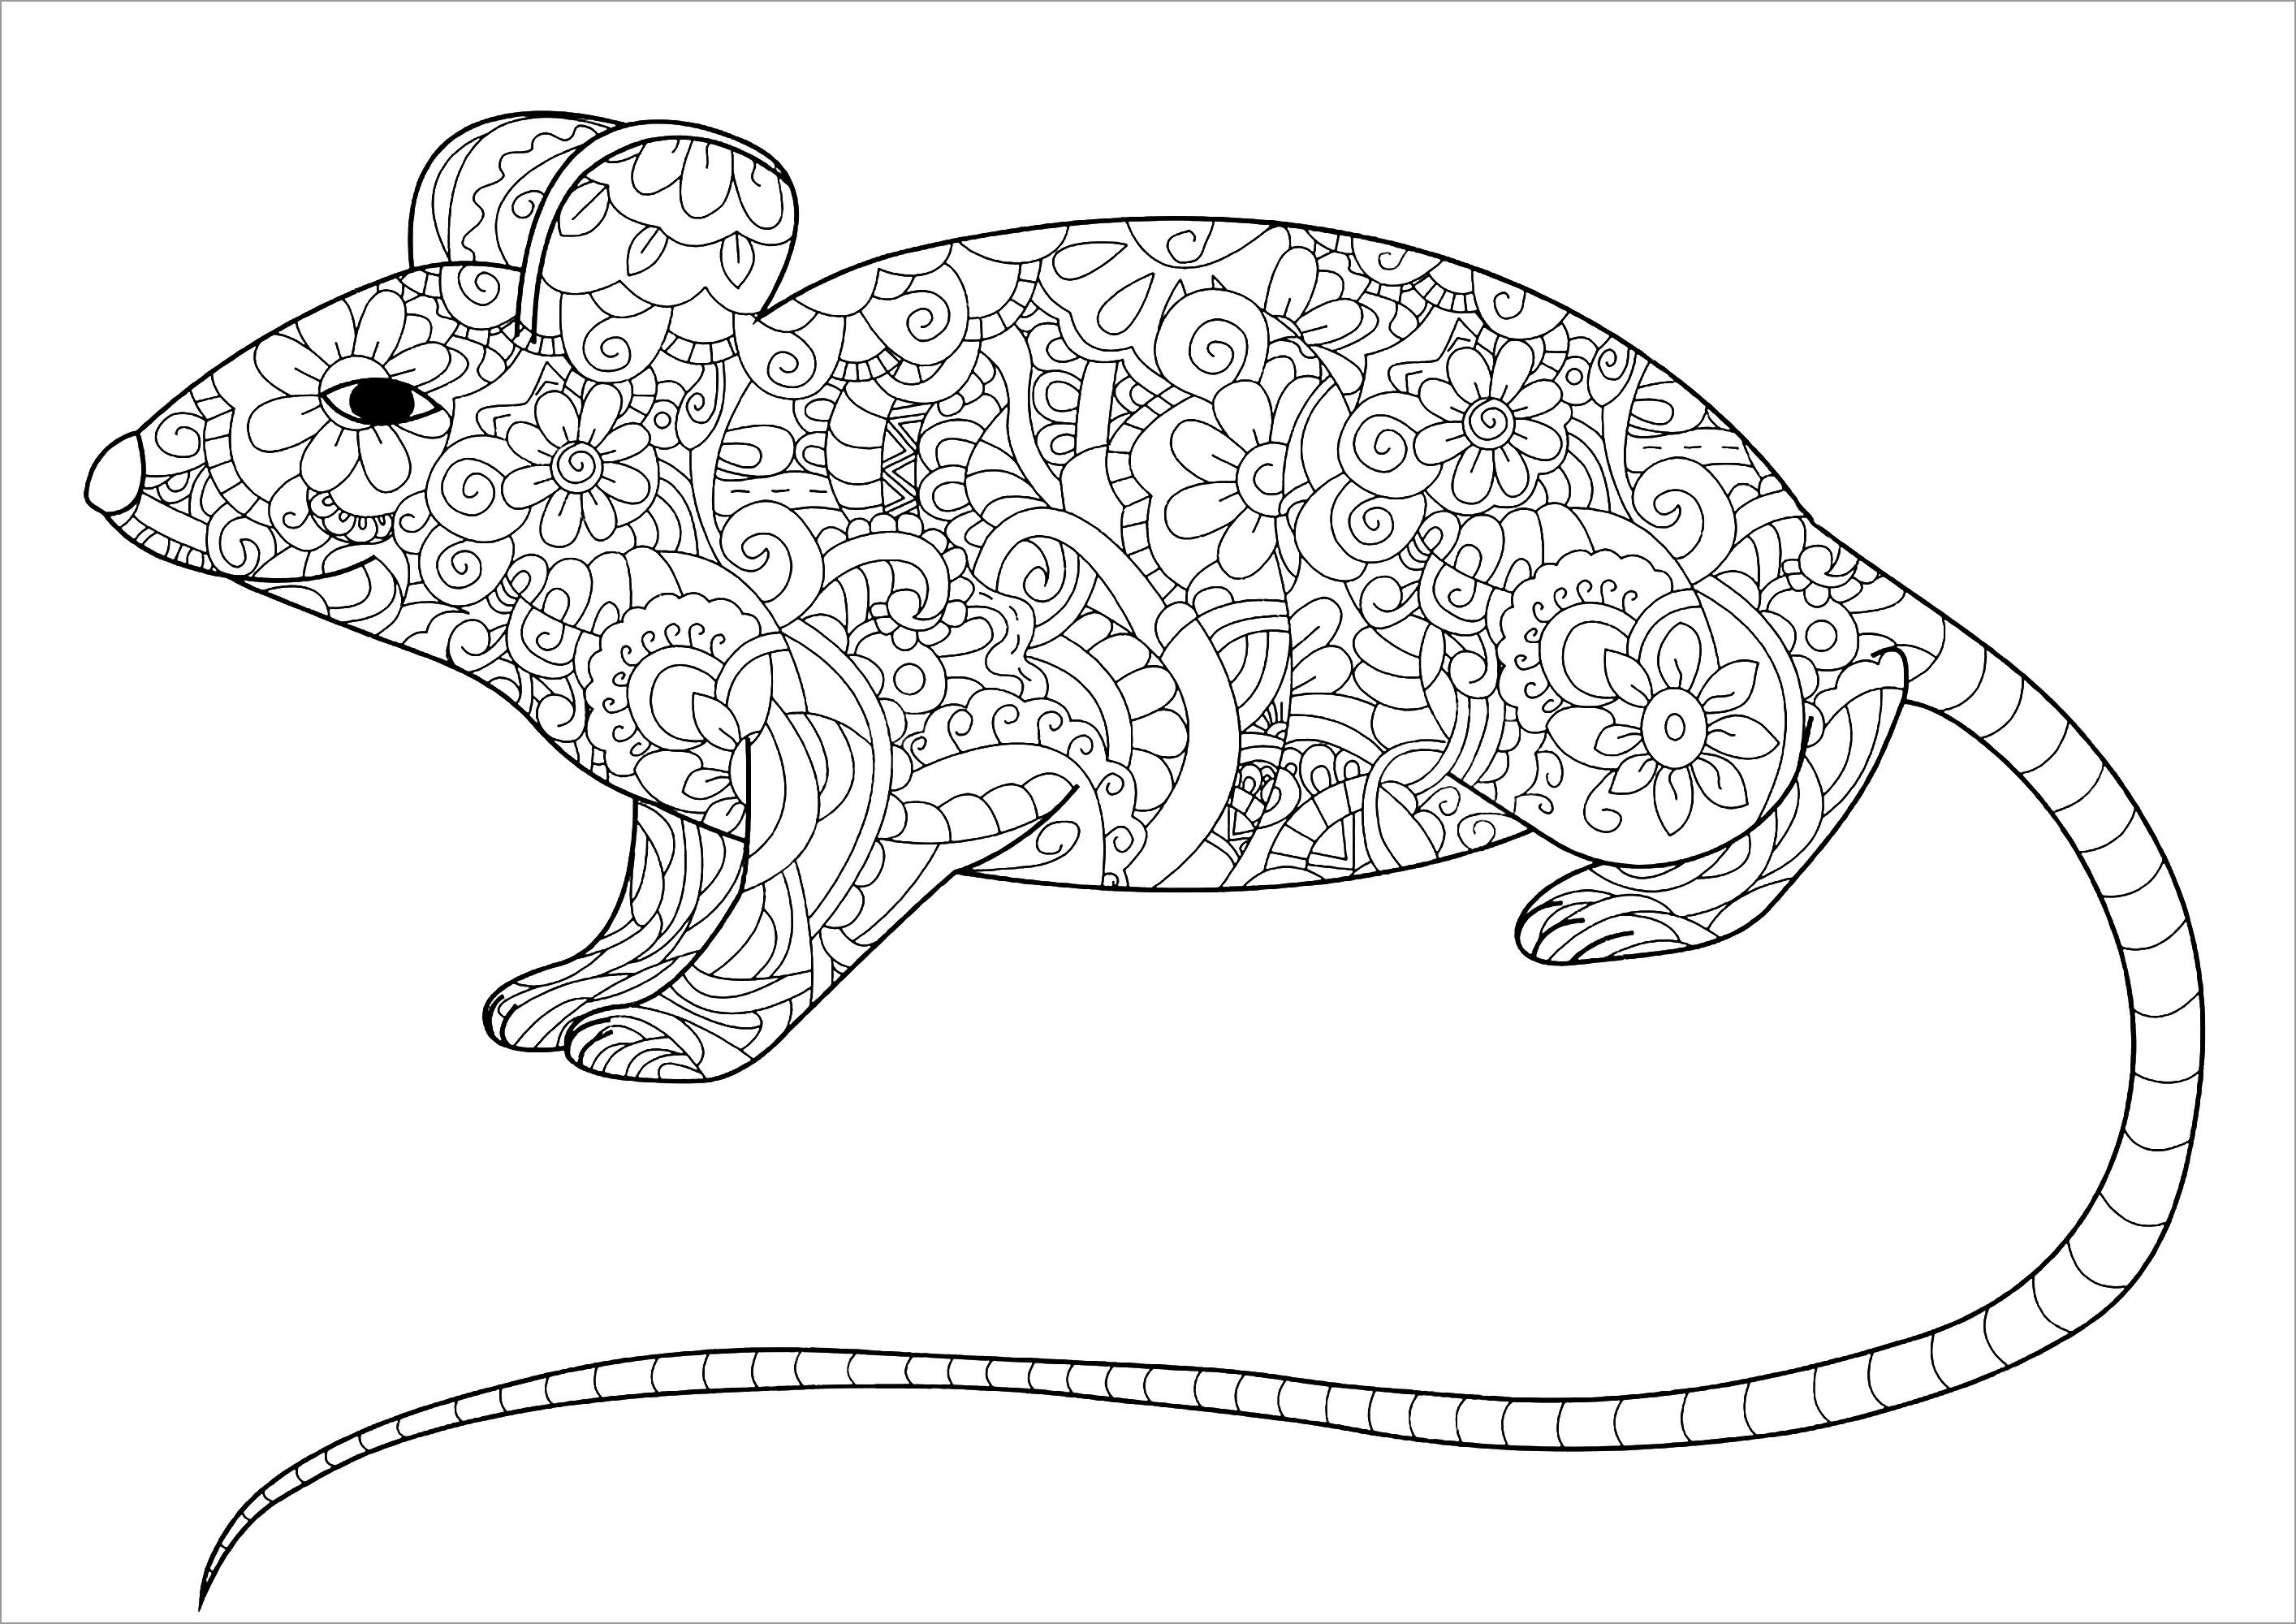 Rat Coloring Pages